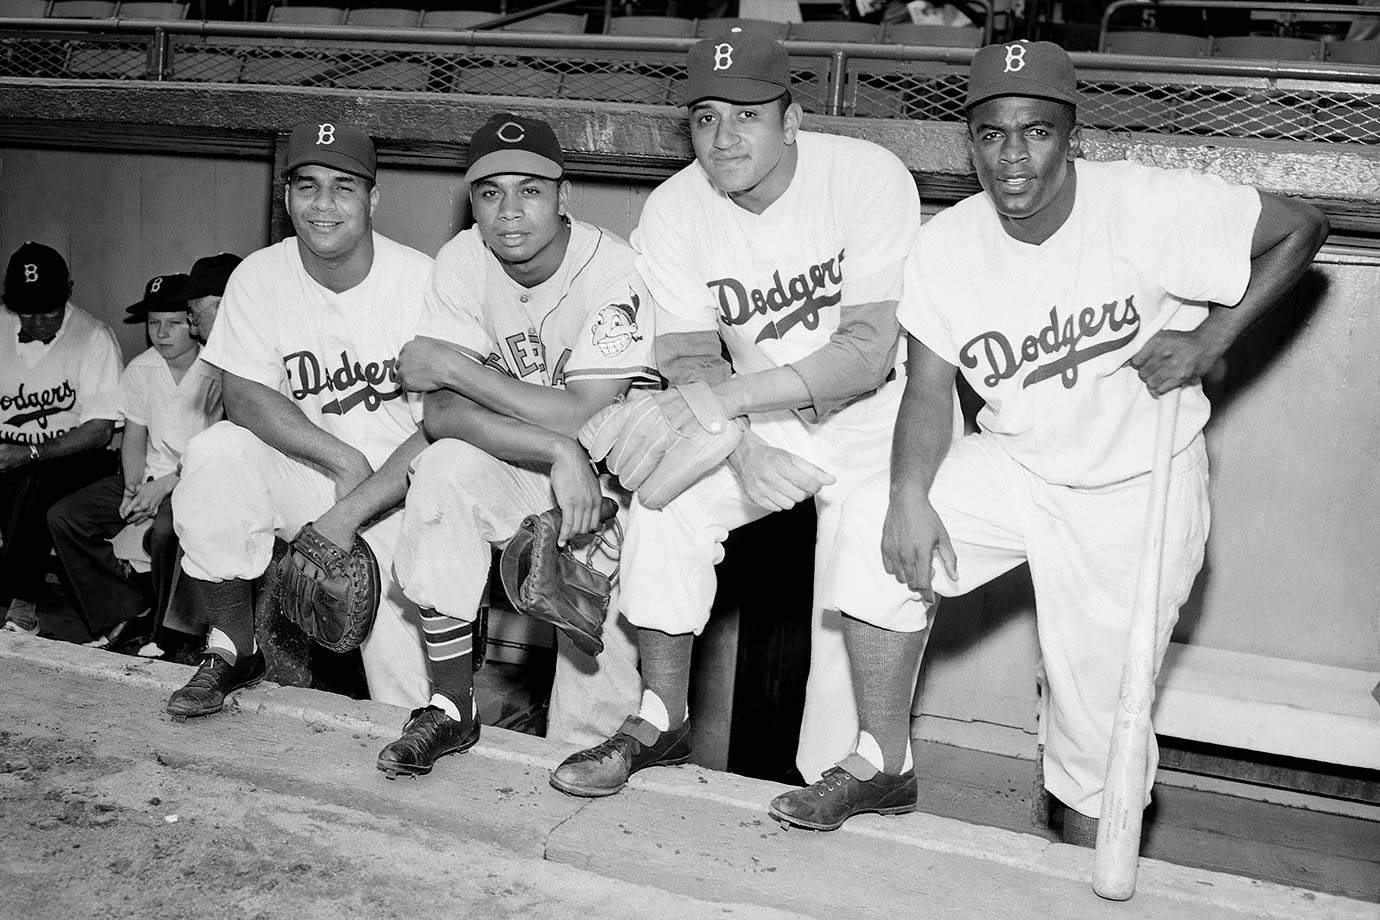 Roy Campanella, Larry Doby, Don Newcombe and Jackie Robinson pose together during the 16th annual All-Star Game, which took place at Ebbetts Field in Brooklyn, N.Y., on July 12, 1949. It was the first All-Star Game to feature black players.